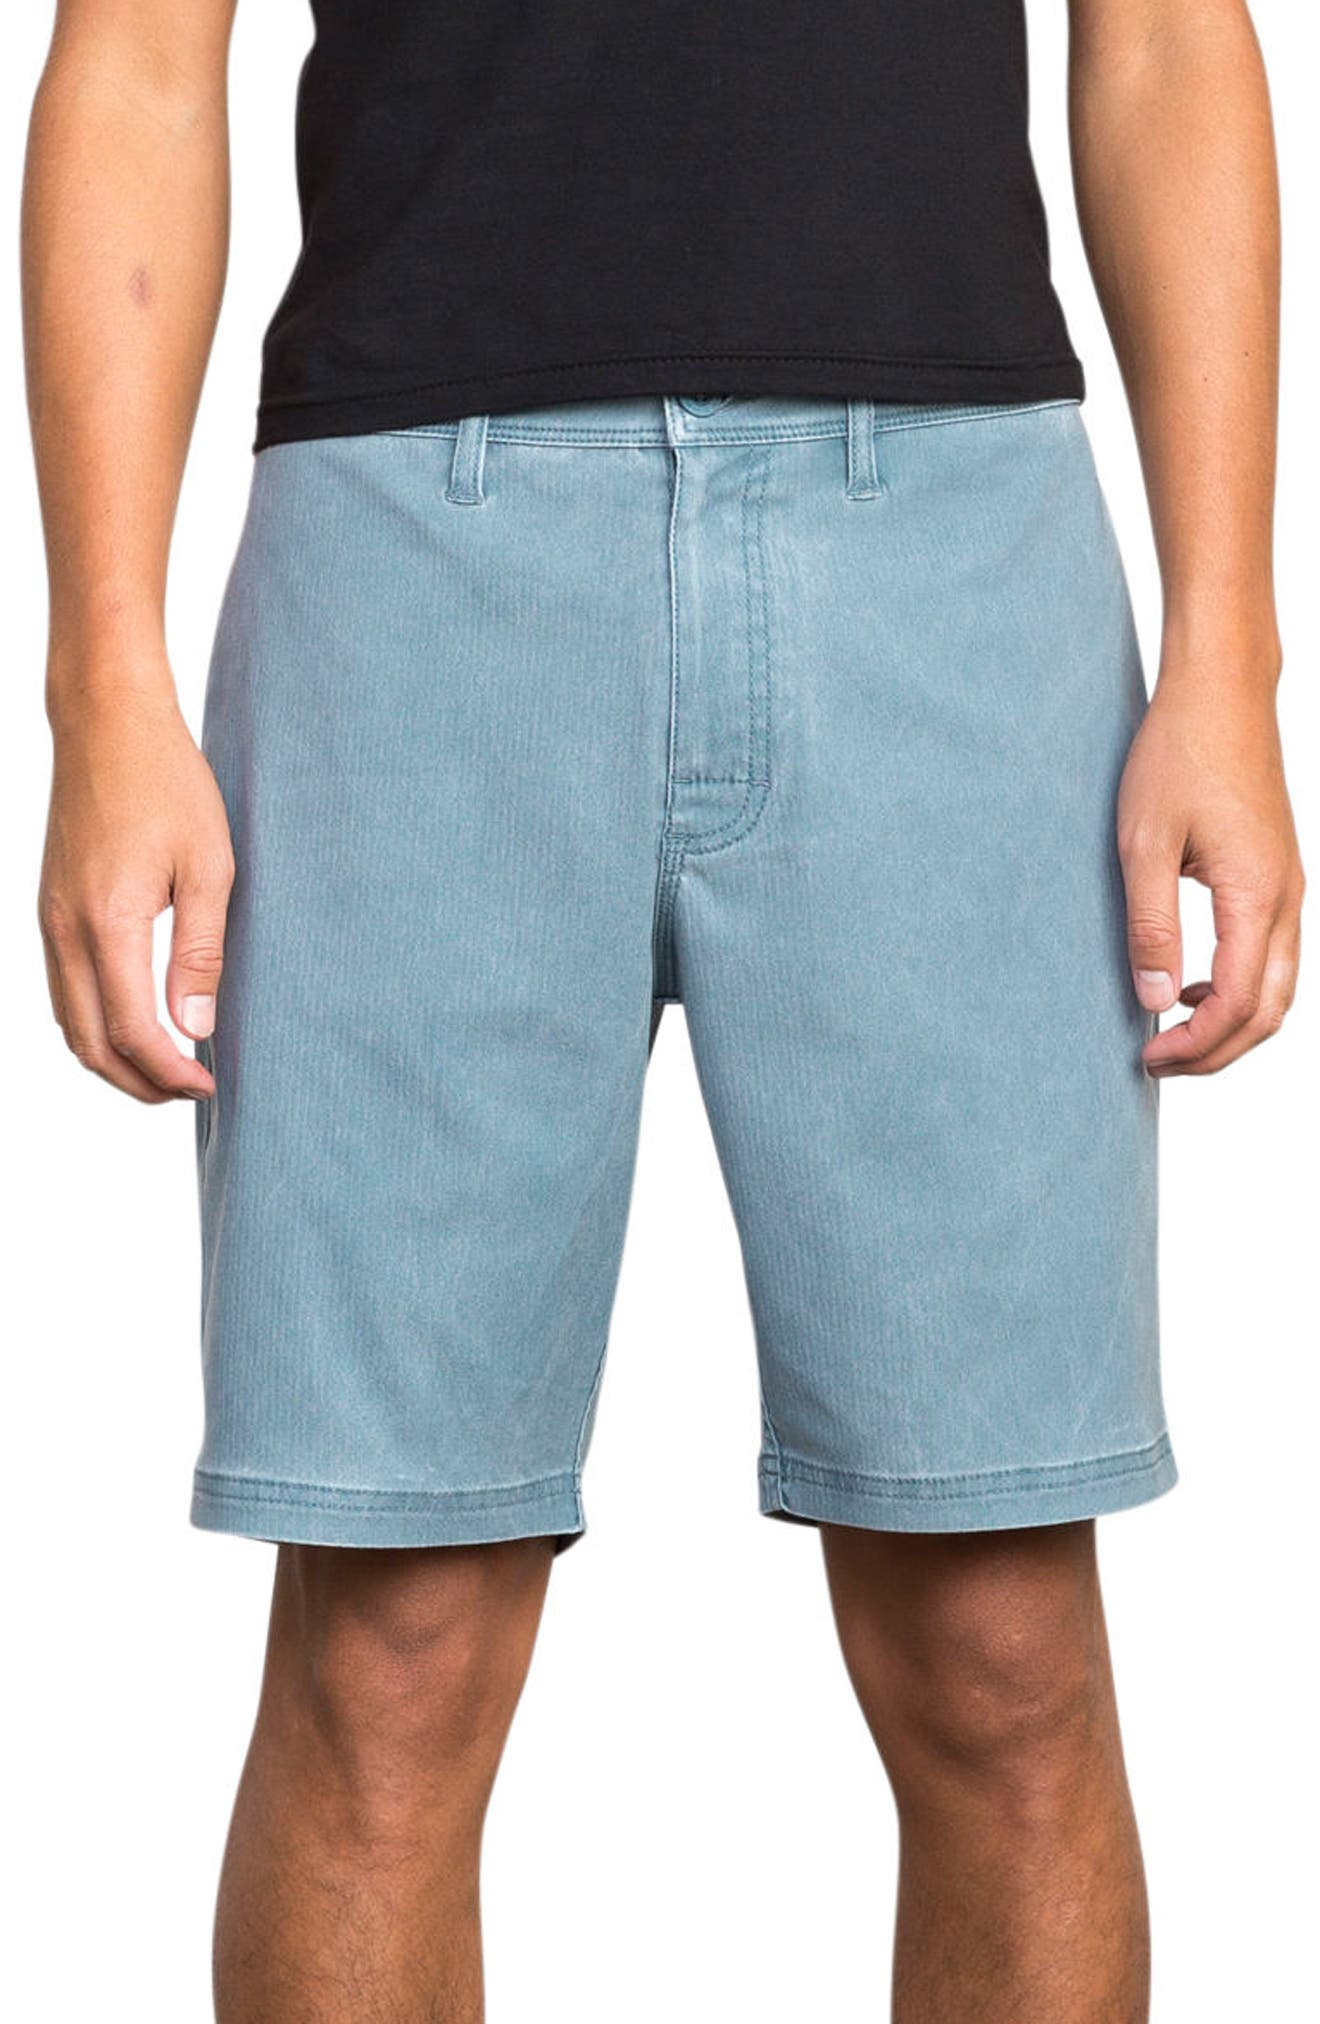 Django Hybrid Shorts,                         Main,                         color, Blue Slate